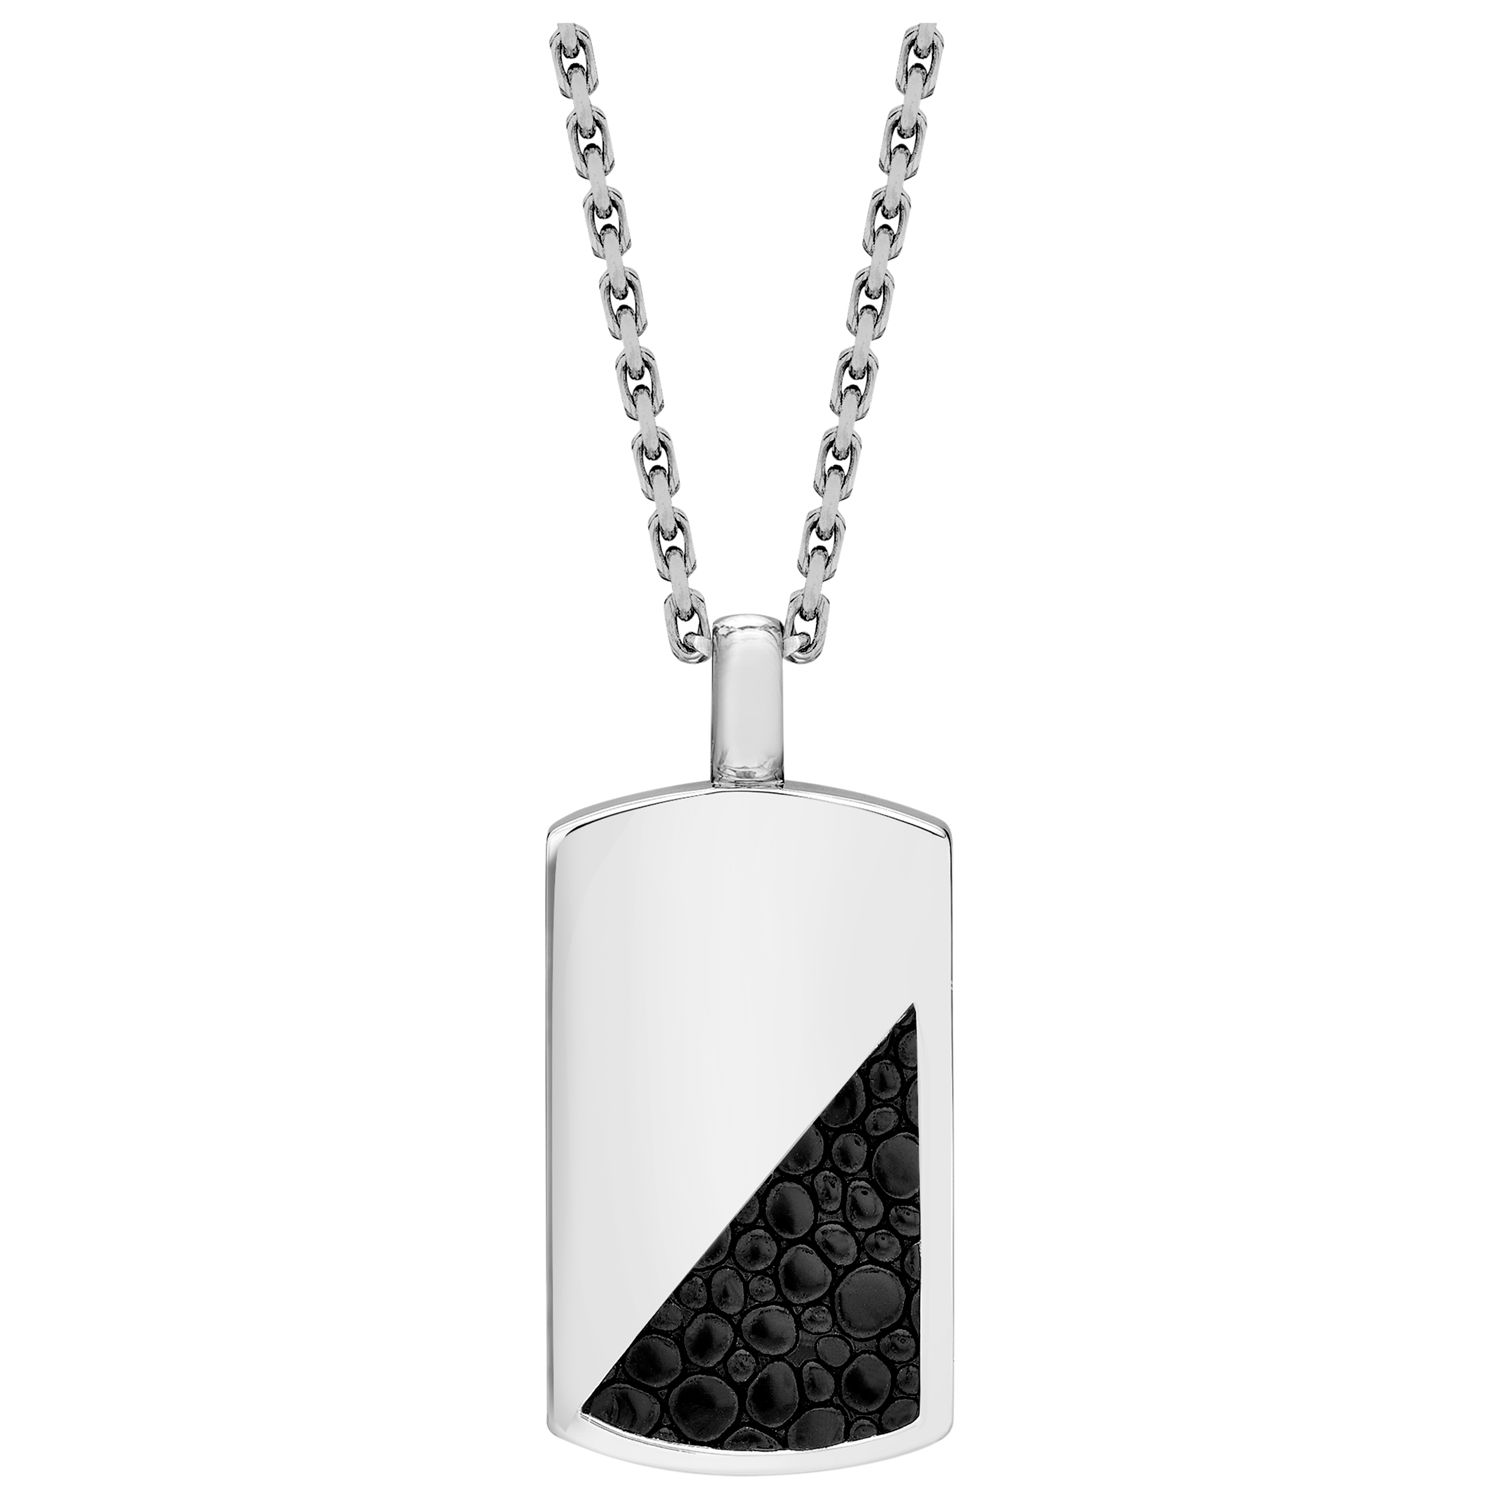 Hoxton London Sterling Silver and Italian Leather Dog Tag Necklace, Black/Silver